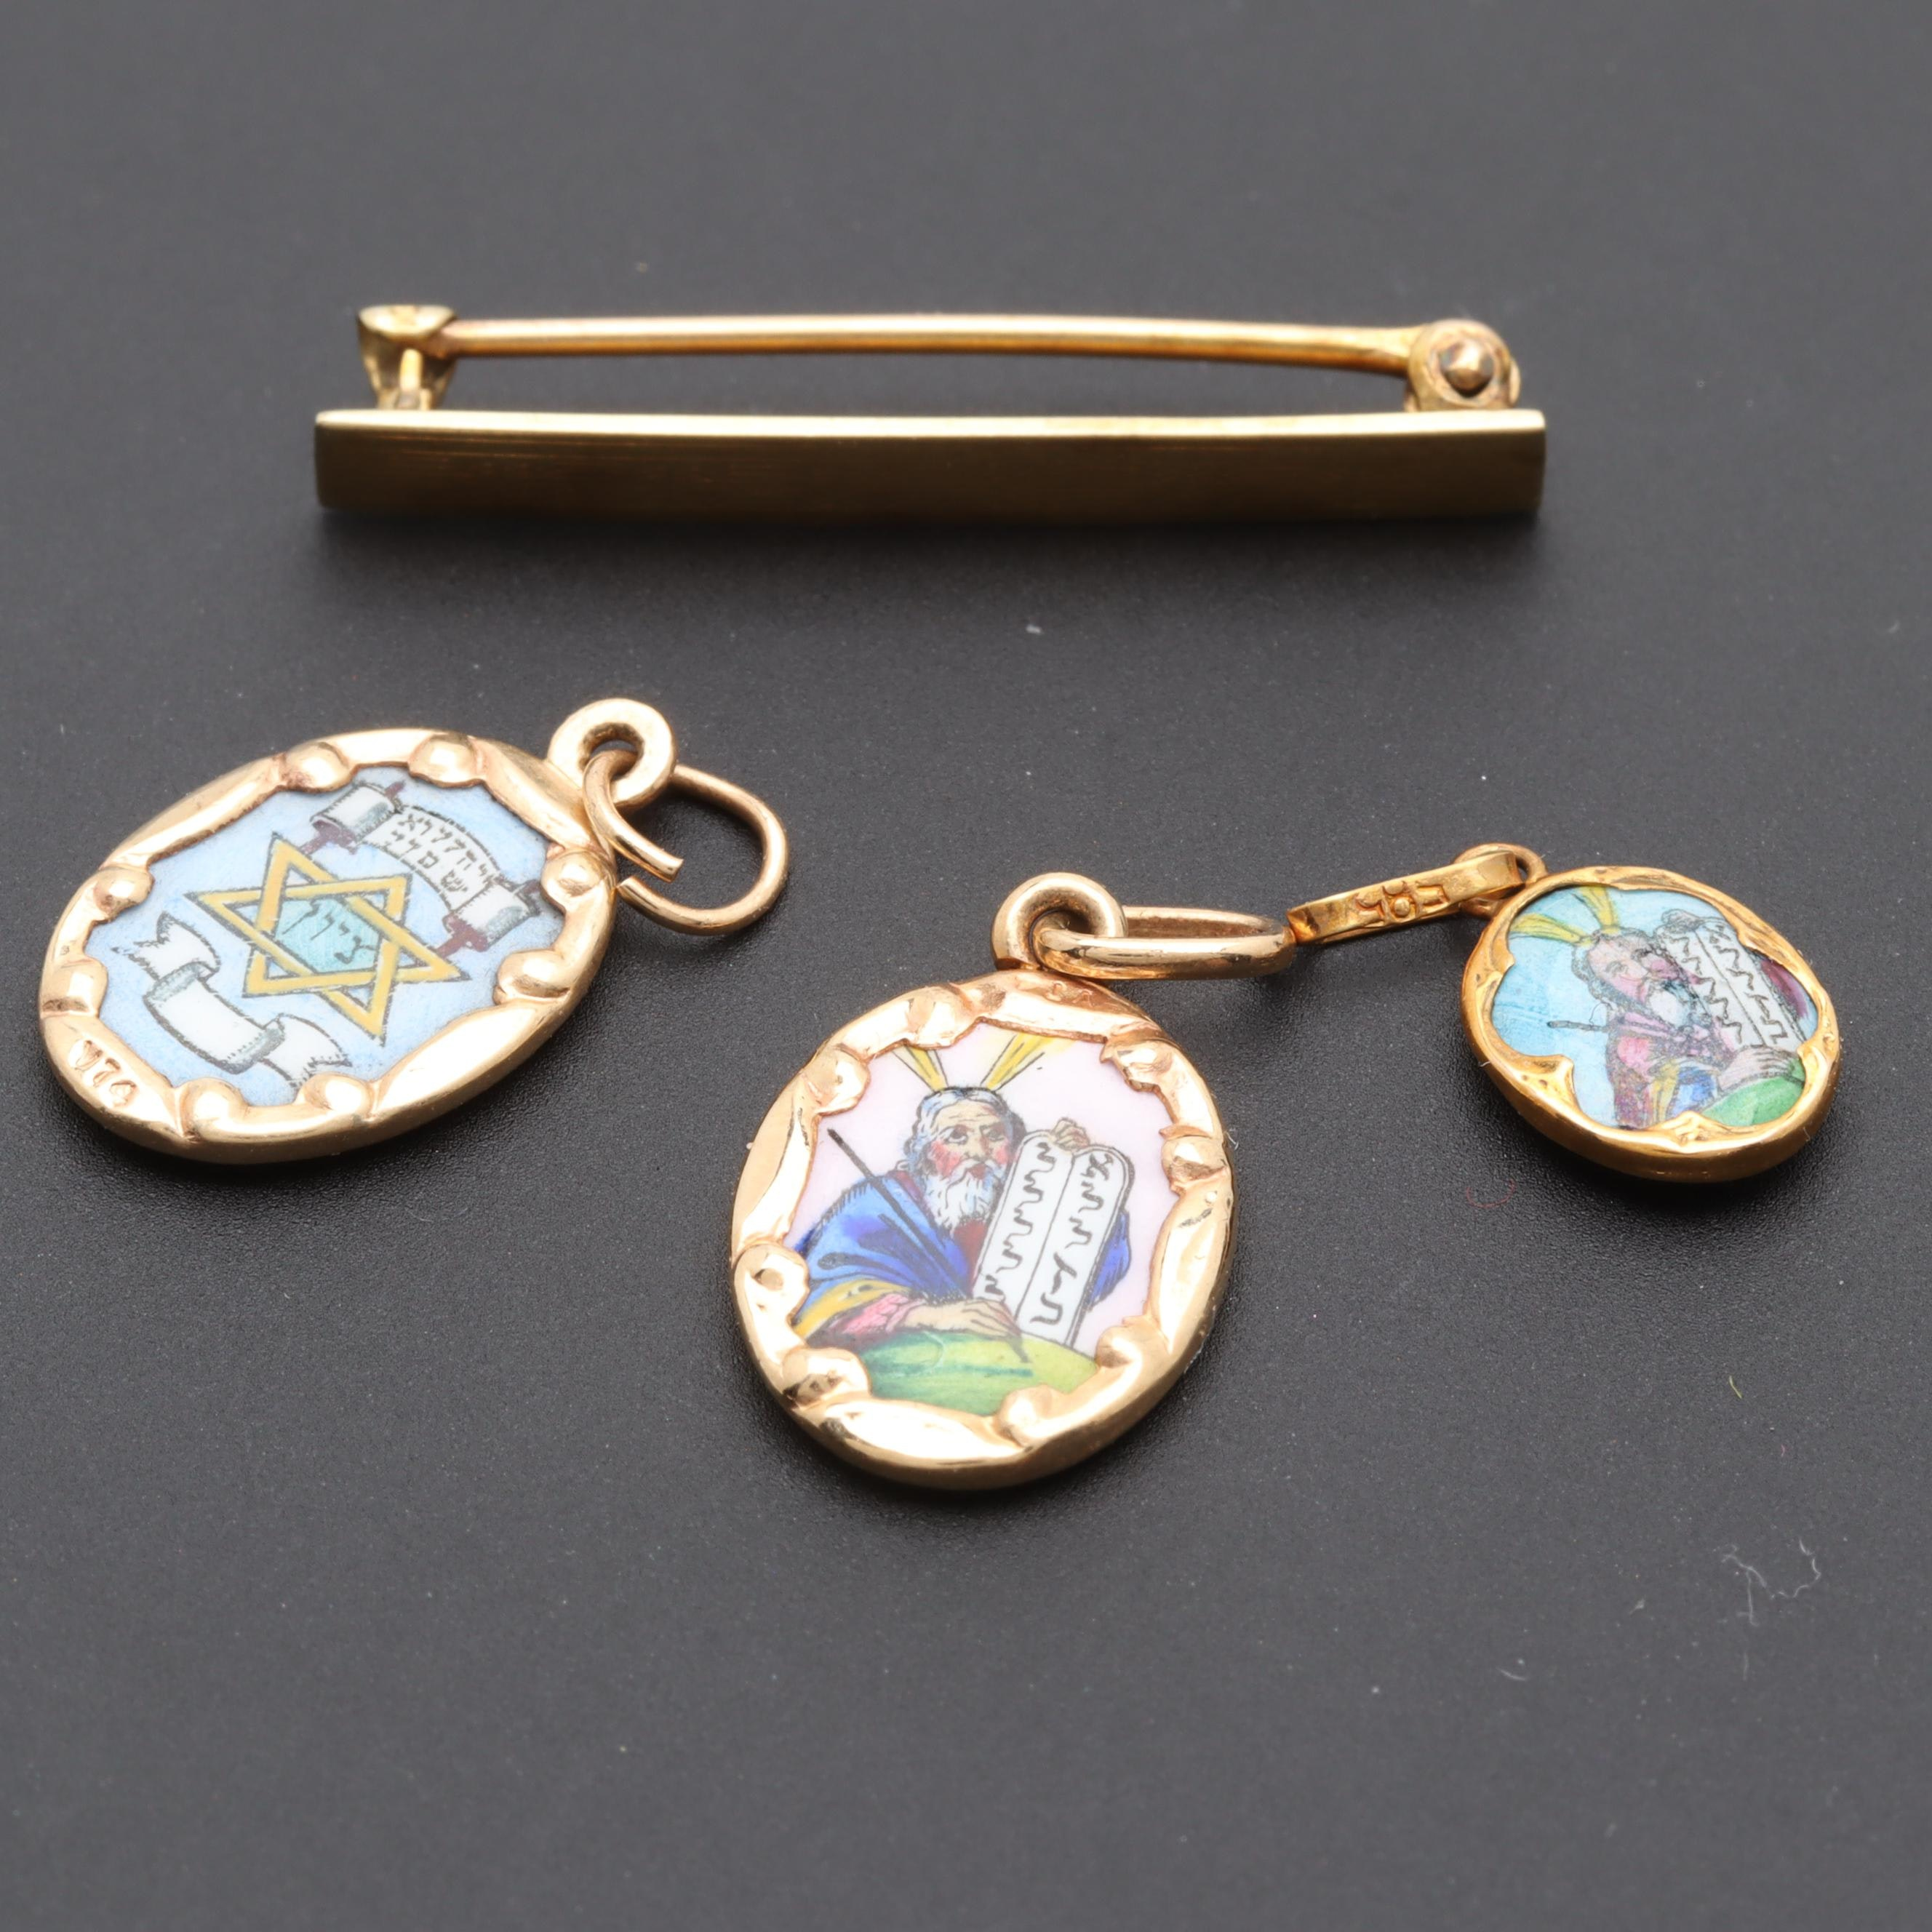 10K and 14K Yellow Gold Enamel Bar Brooch and Judaica Pendants